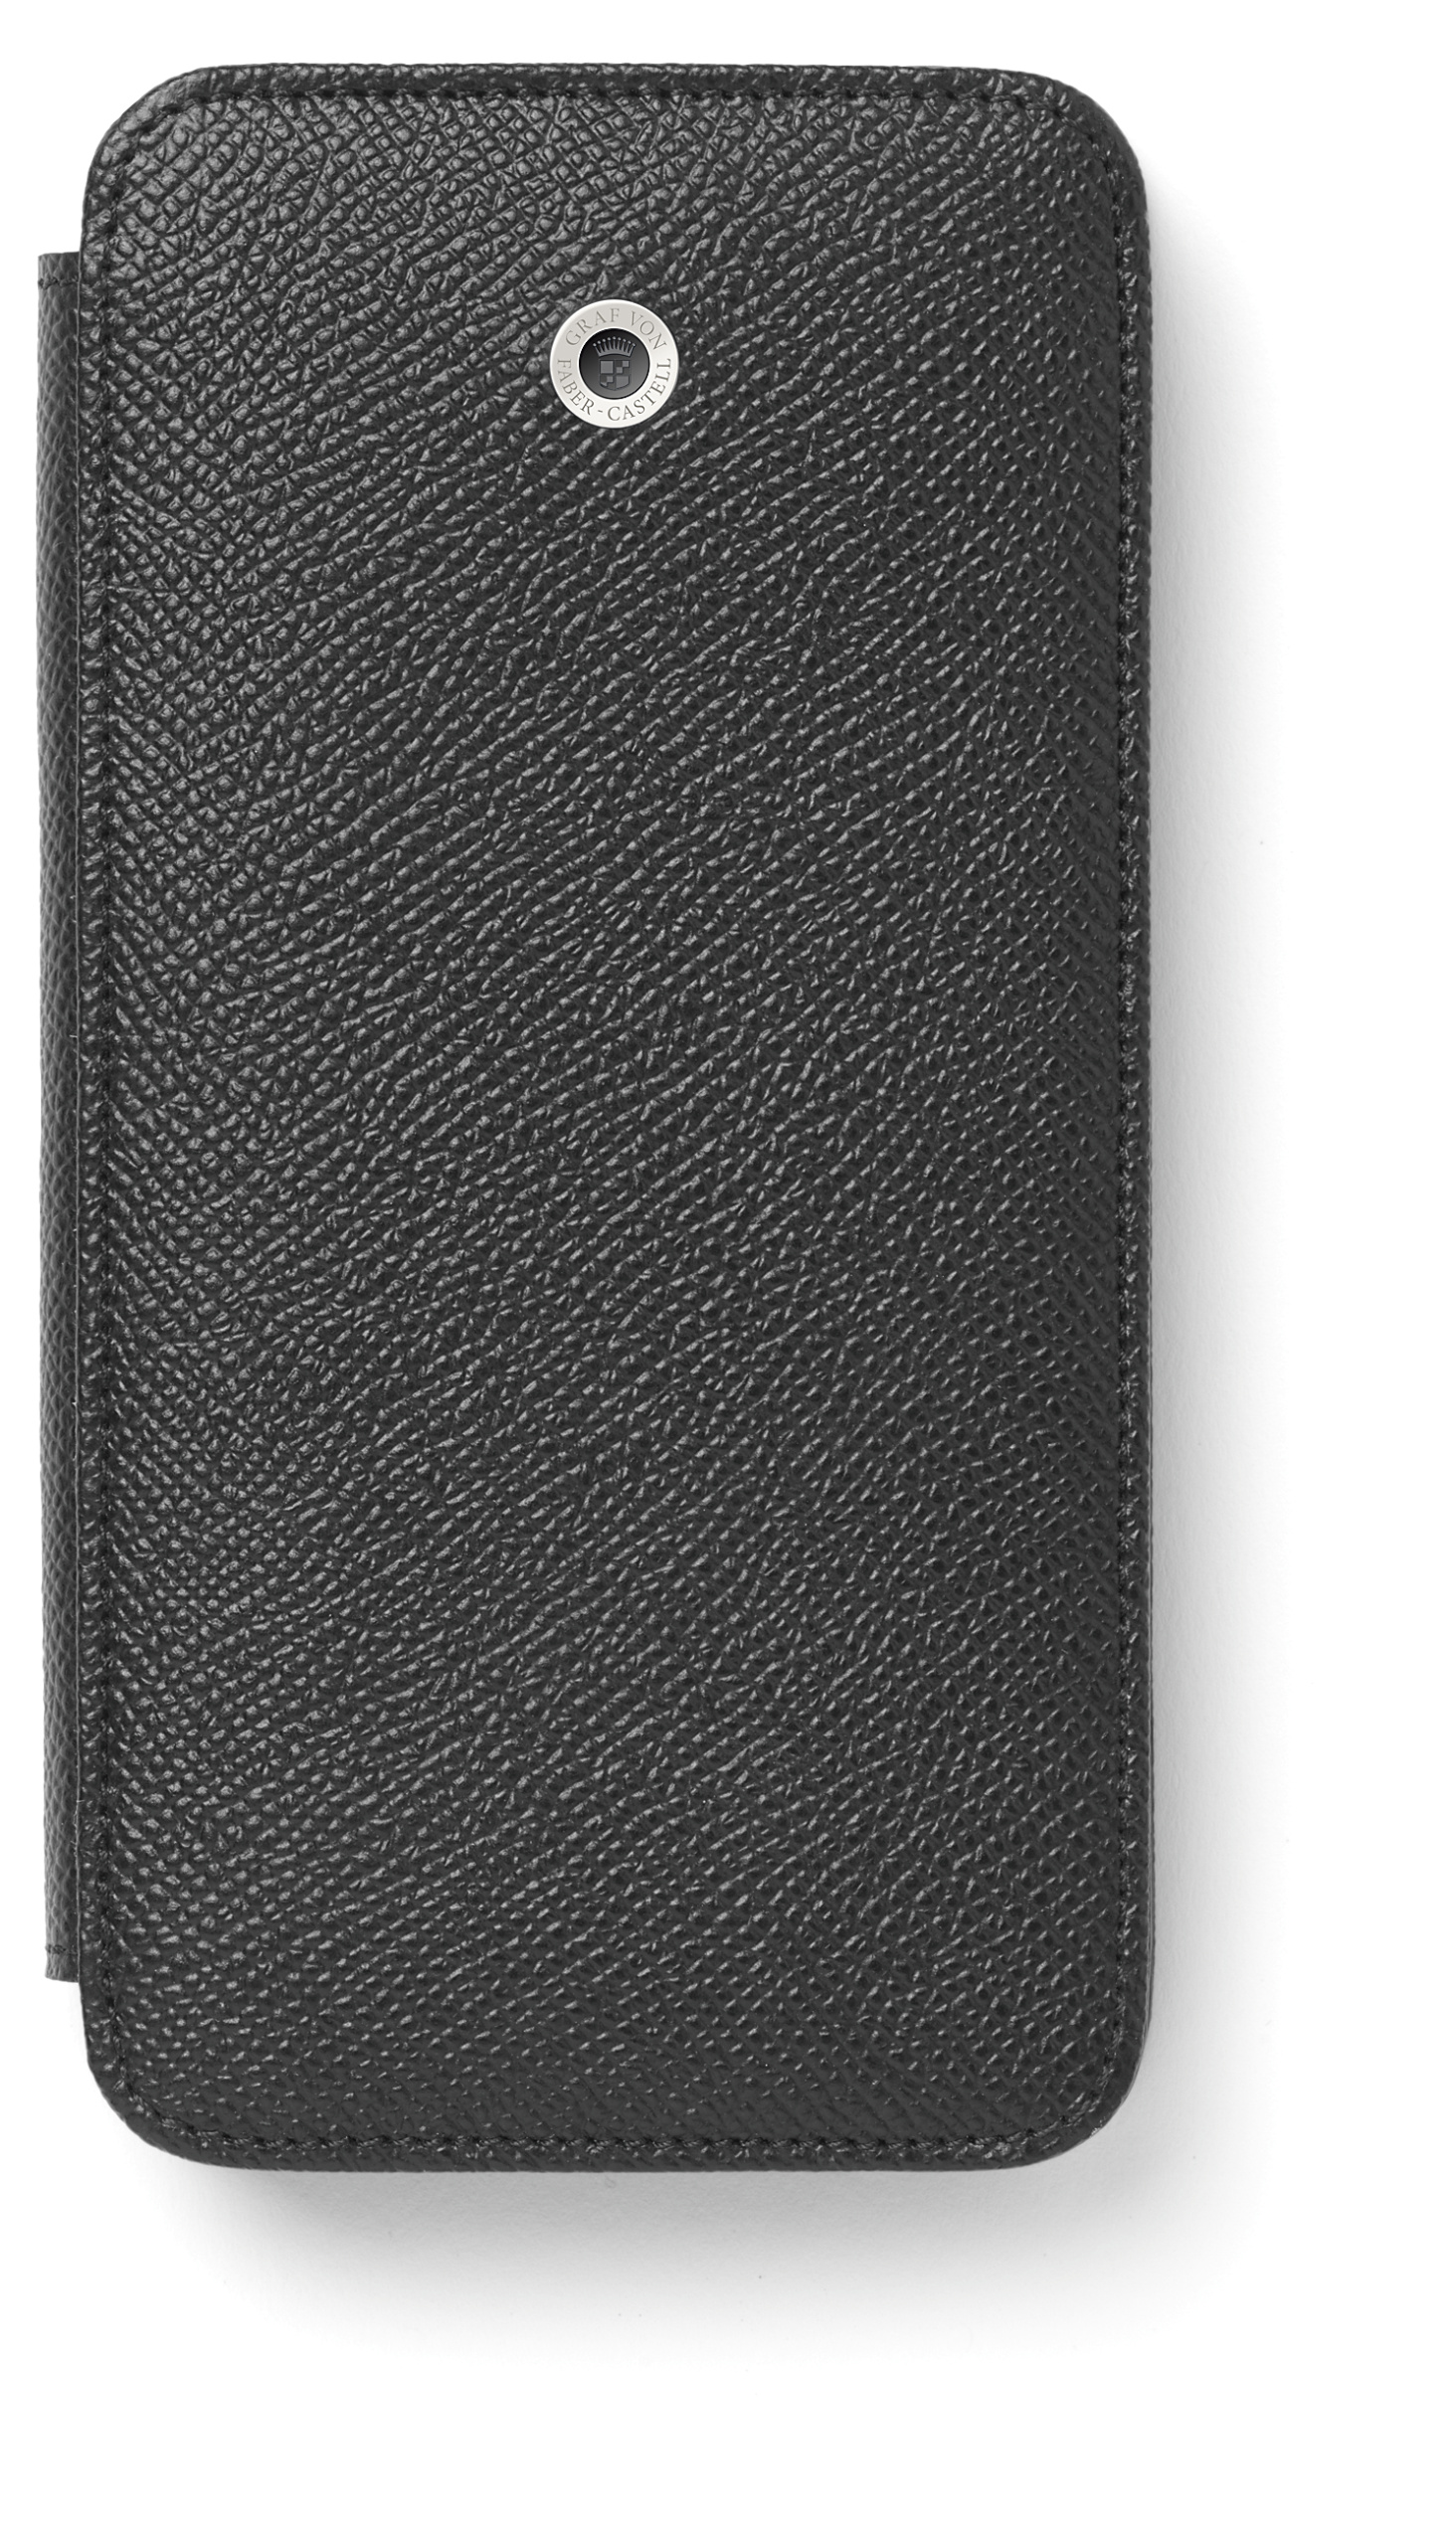 Graf-von-Faber-Castell - Smartphone cover for iPhone 8 plus Epsom, black